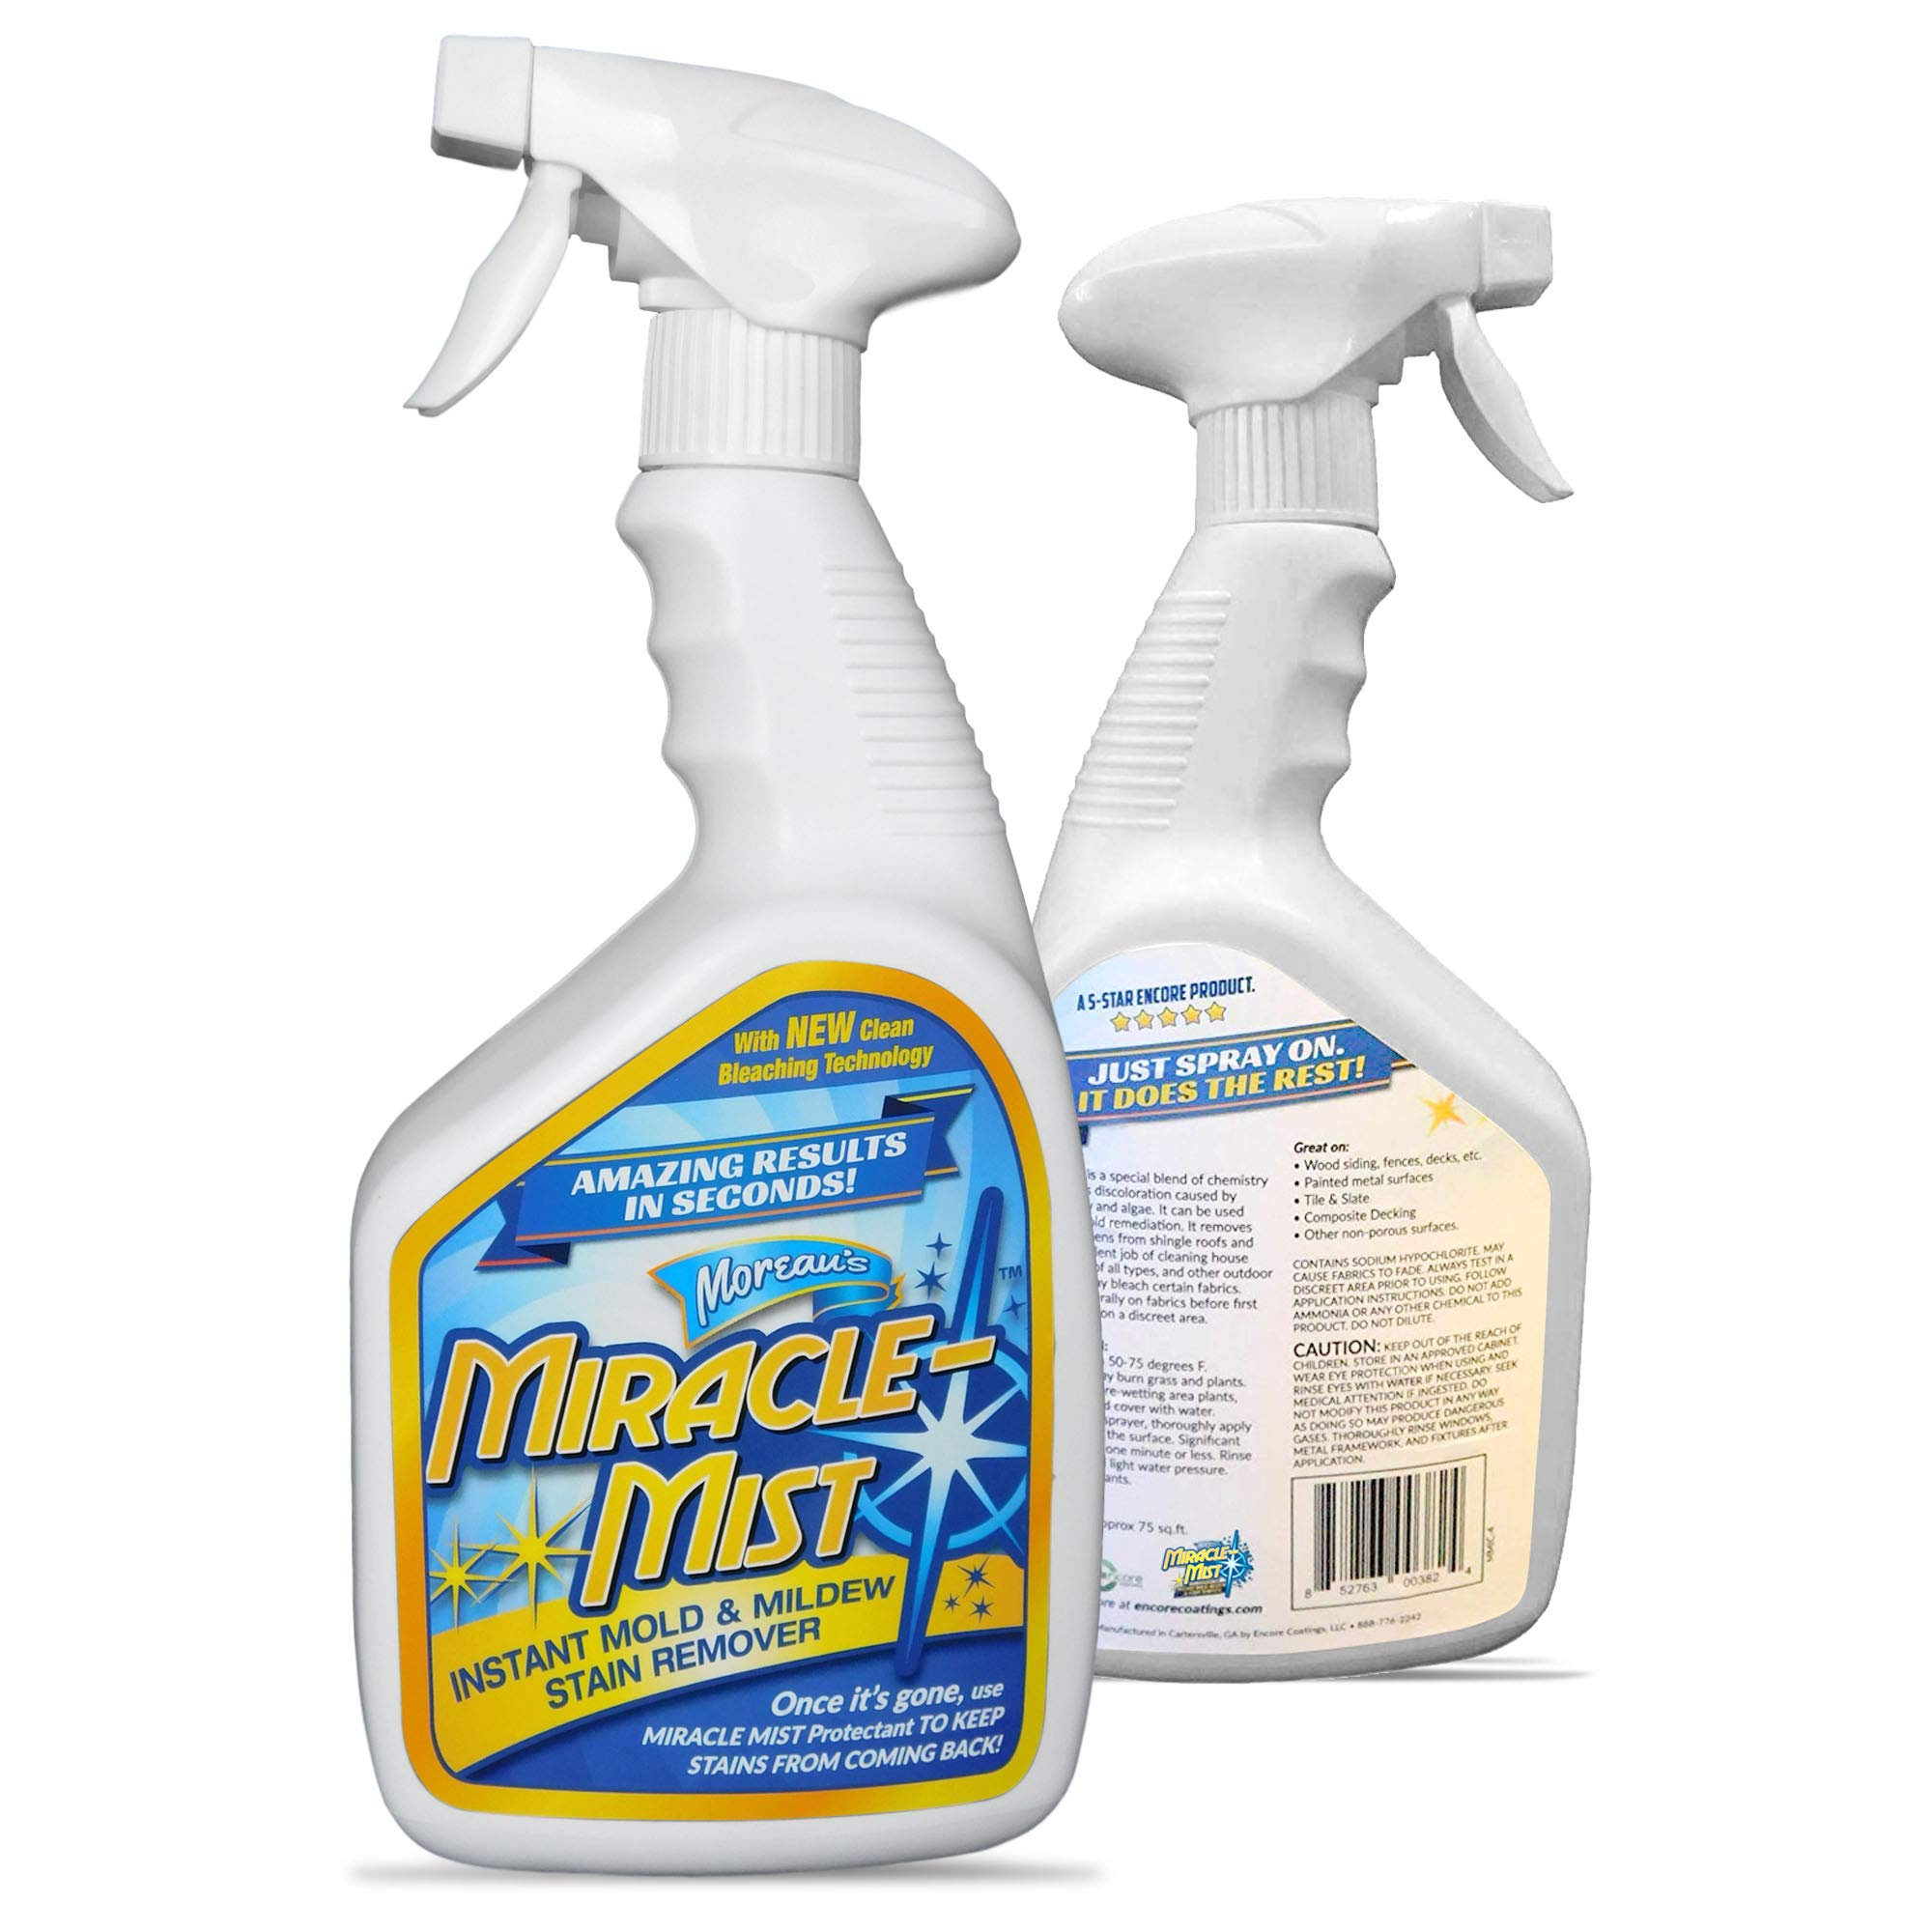 MiracleMist Instant Mold and Mildew Stain Remover for Indoor and Outdoor Use - Long Lasting Bathroom, Deck, Concrete, Vinyl, Tile Cleaner, 32 Oz by MiracleMist